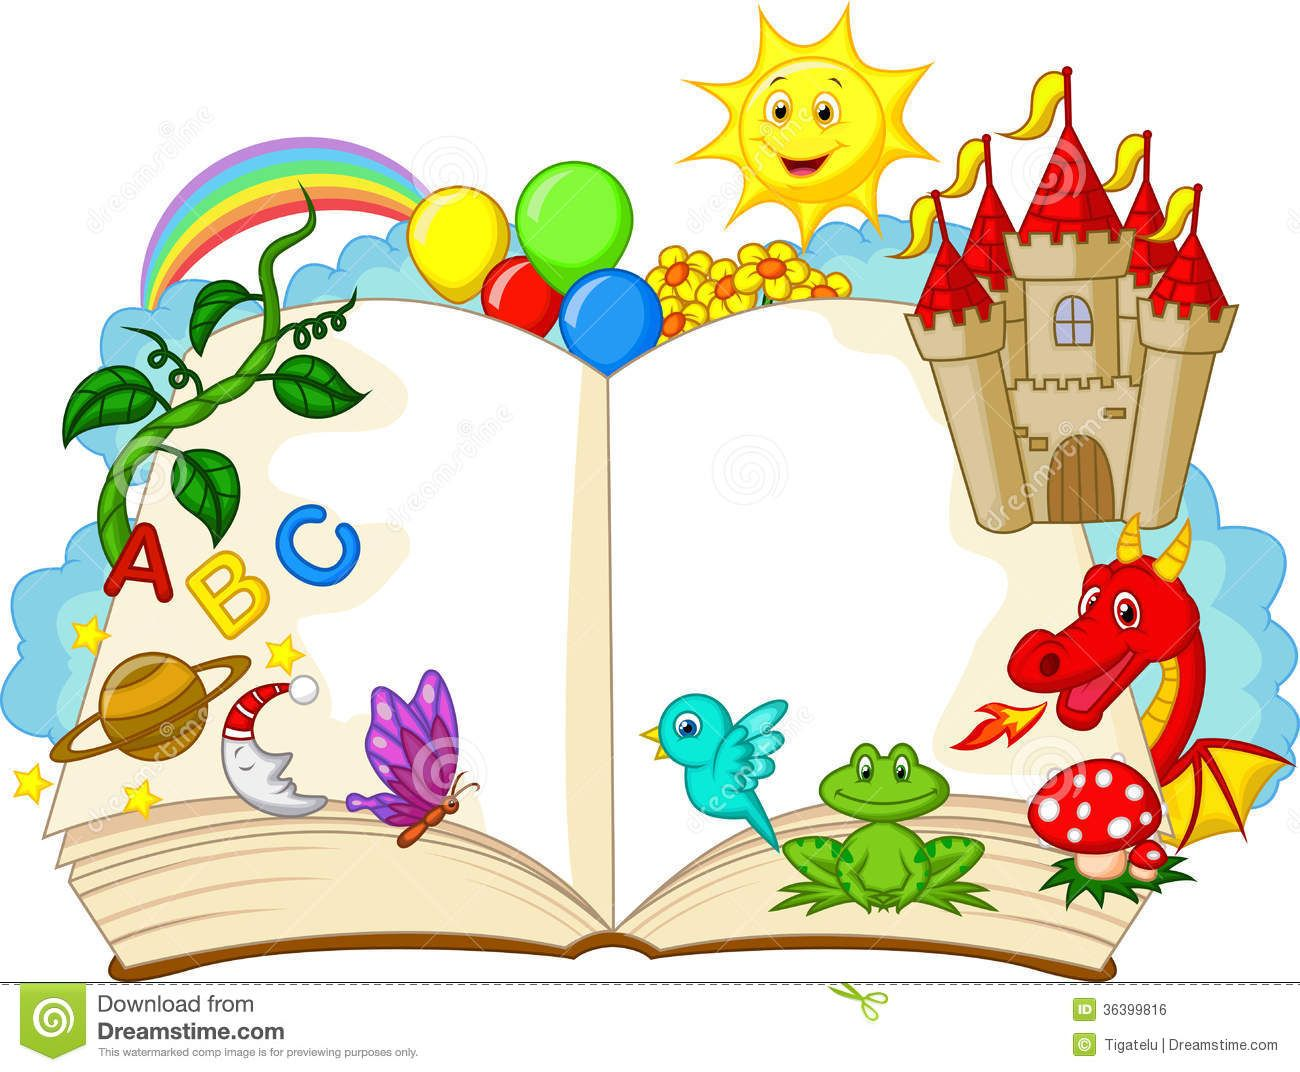 fantasy book cartoon royalty free stock image image 36399816 rh pinterest ca story book clipart black and white story book clipart